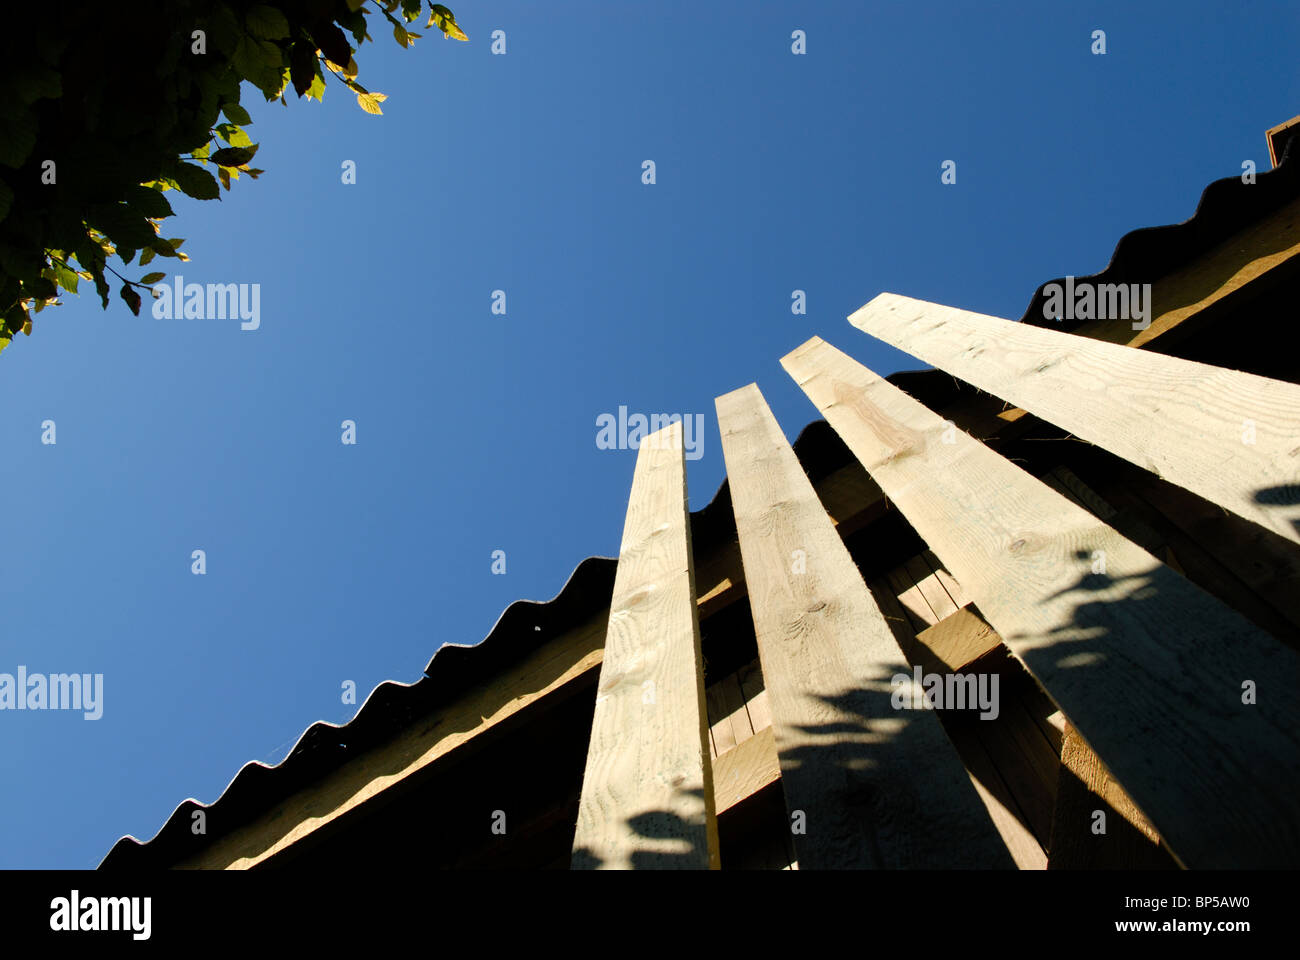 FOUR PLANKS - Stock Image